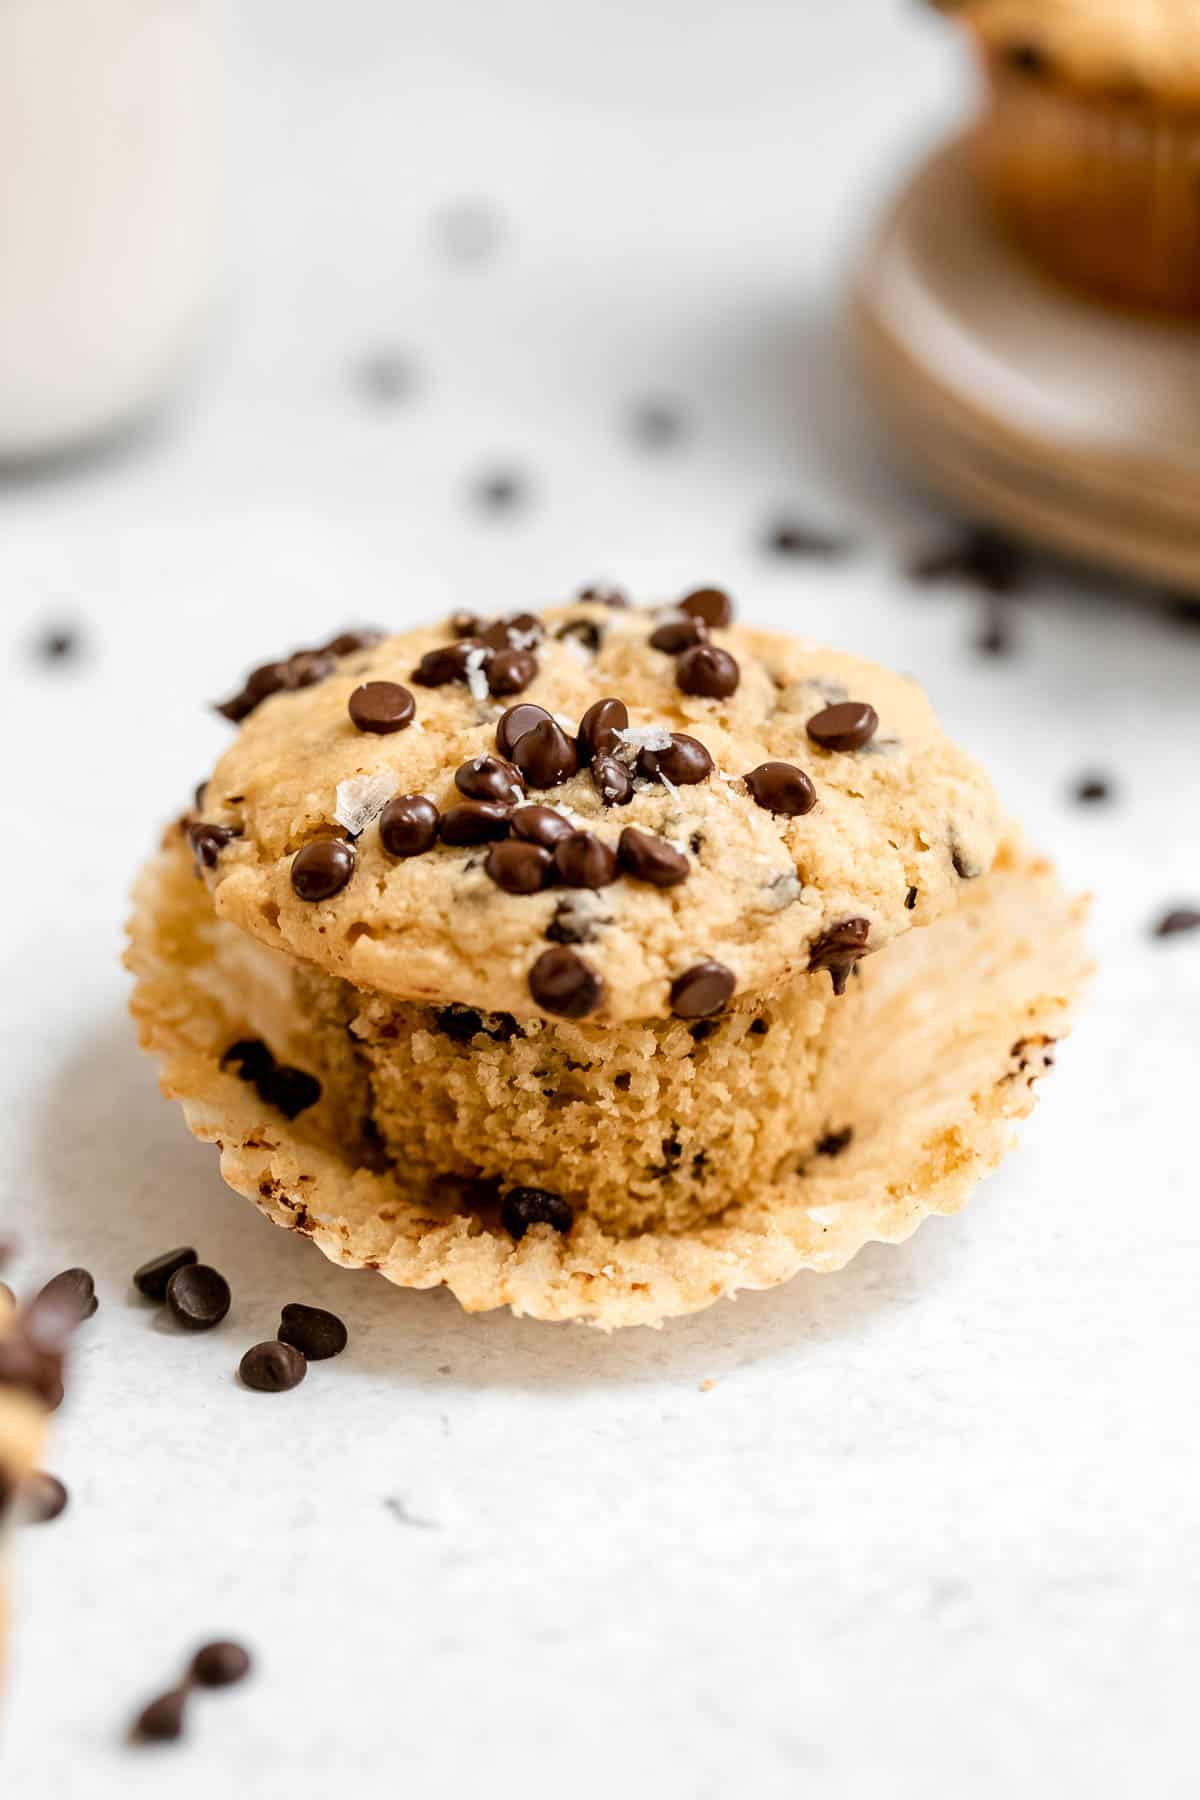 one muffin with the wrapped pulled off with chocolate chips on top